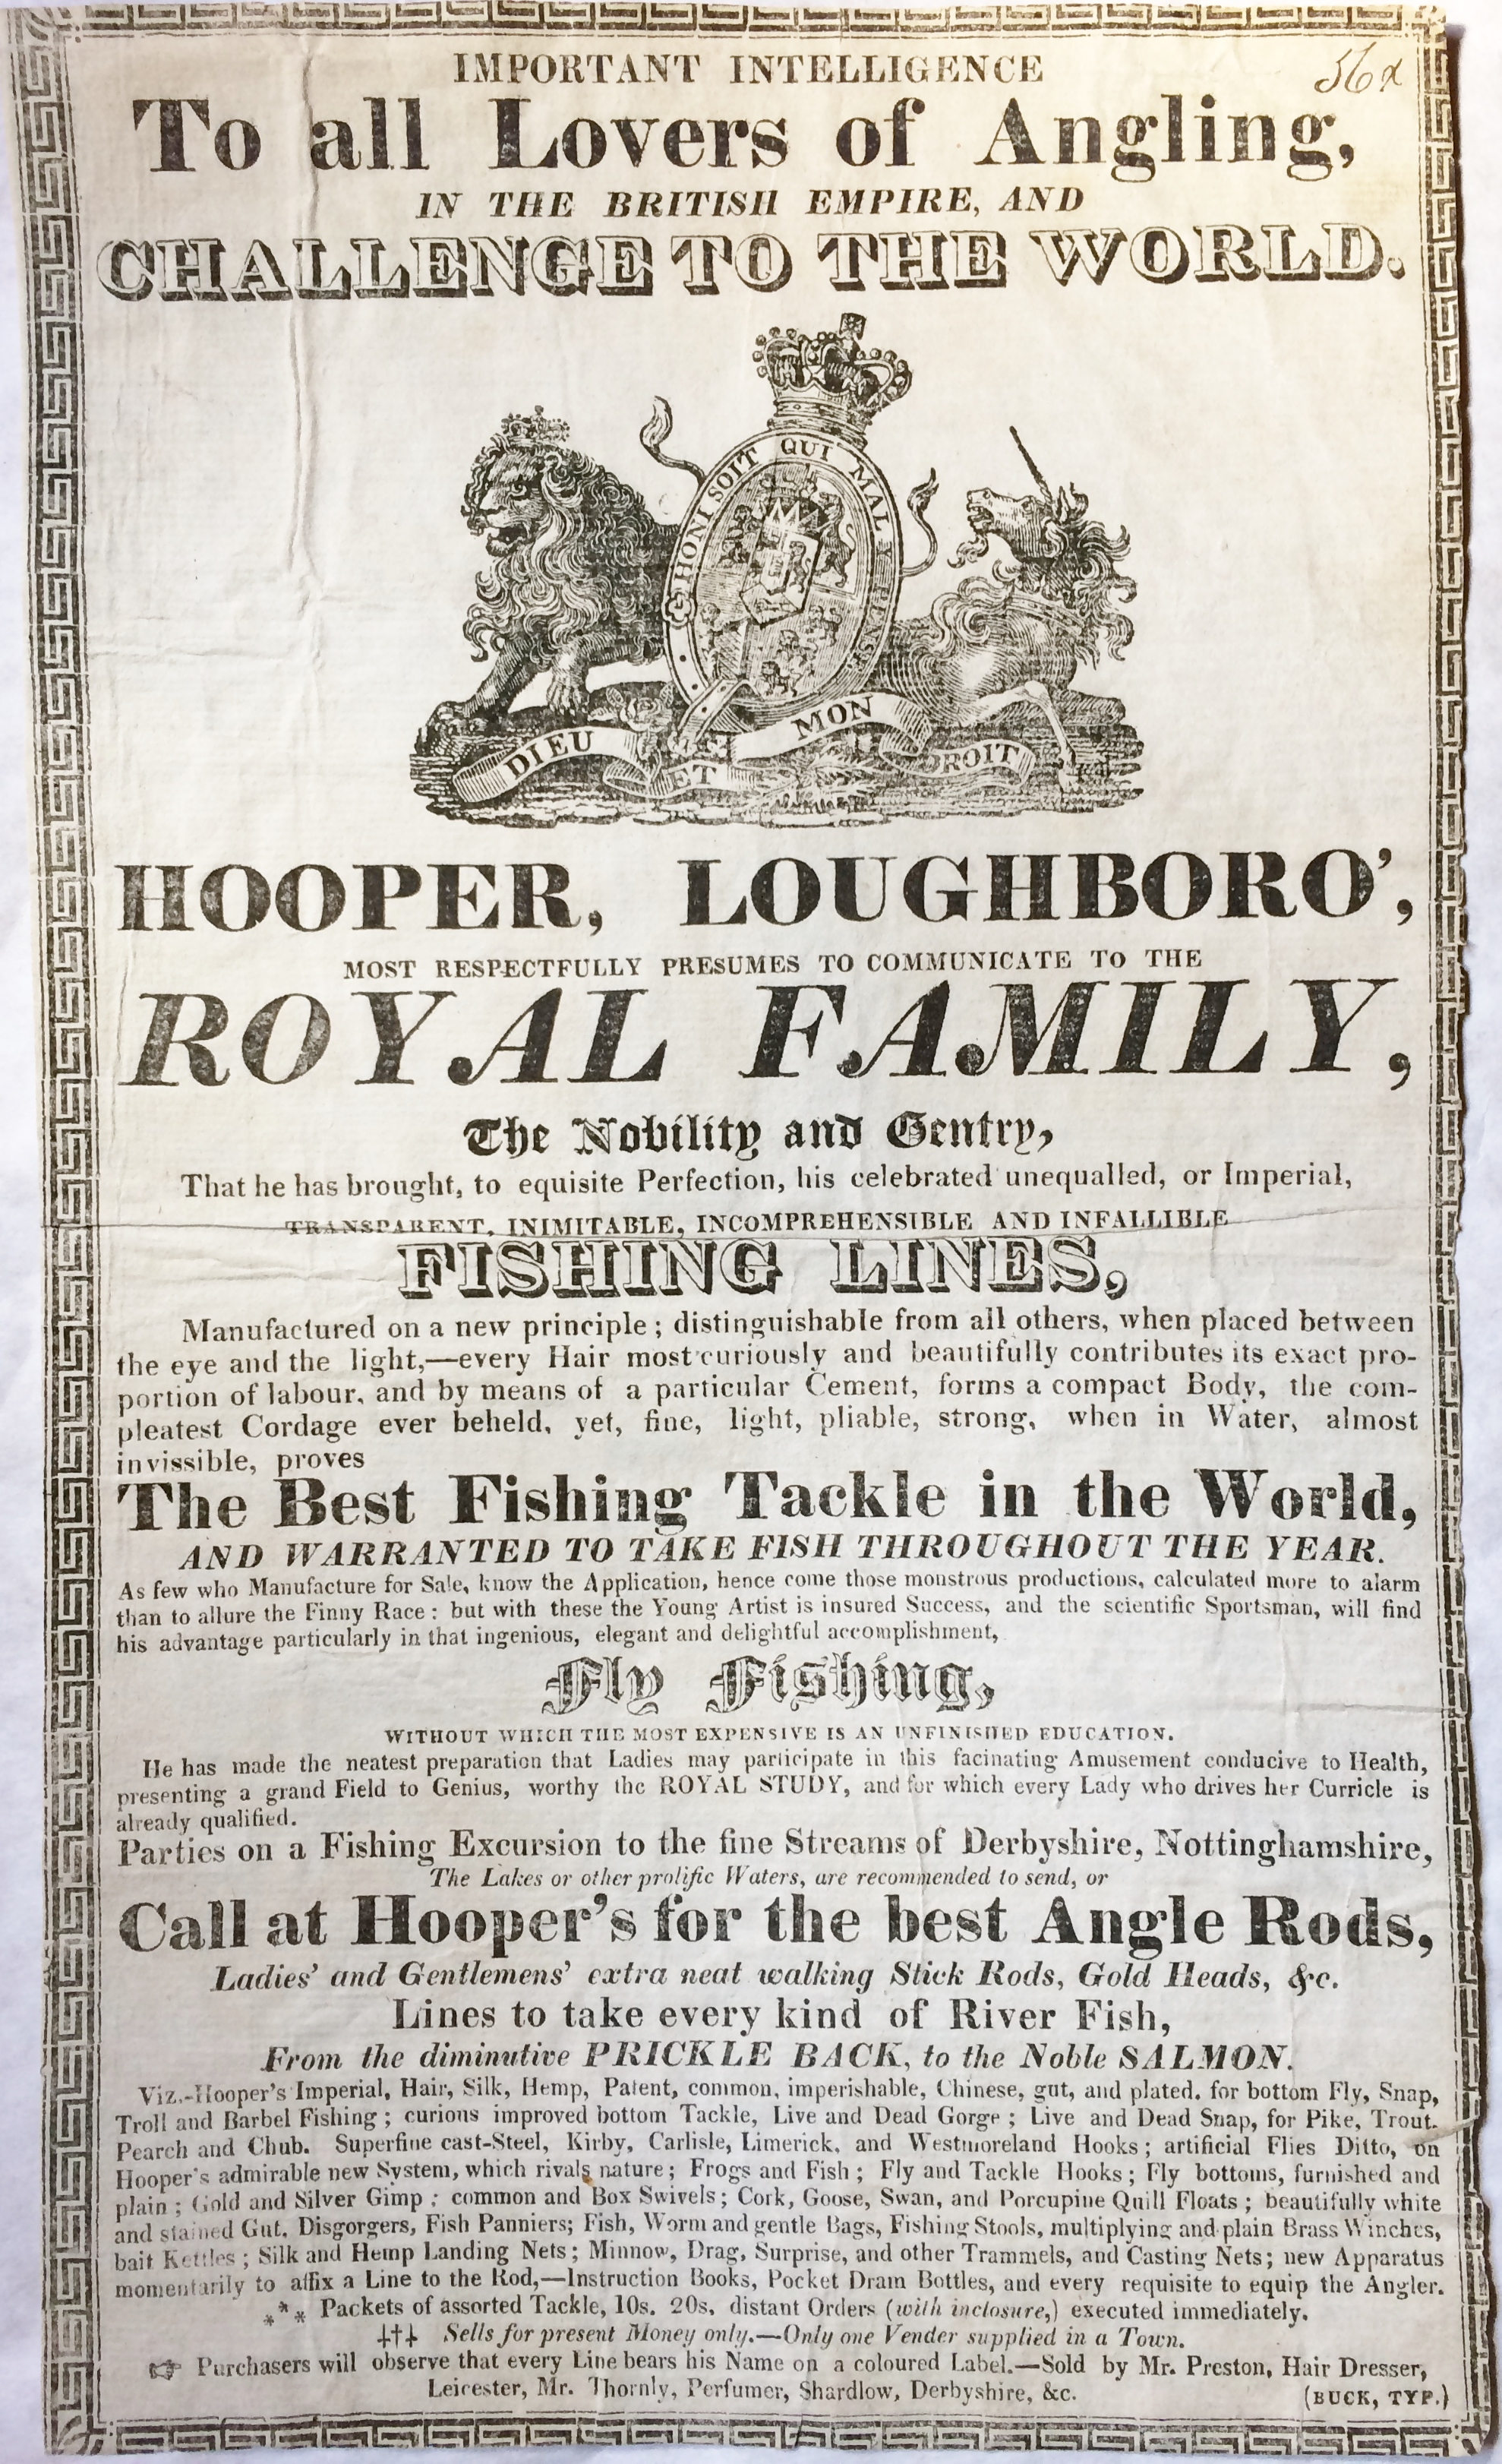 Angling Broadside (Hooper, William)